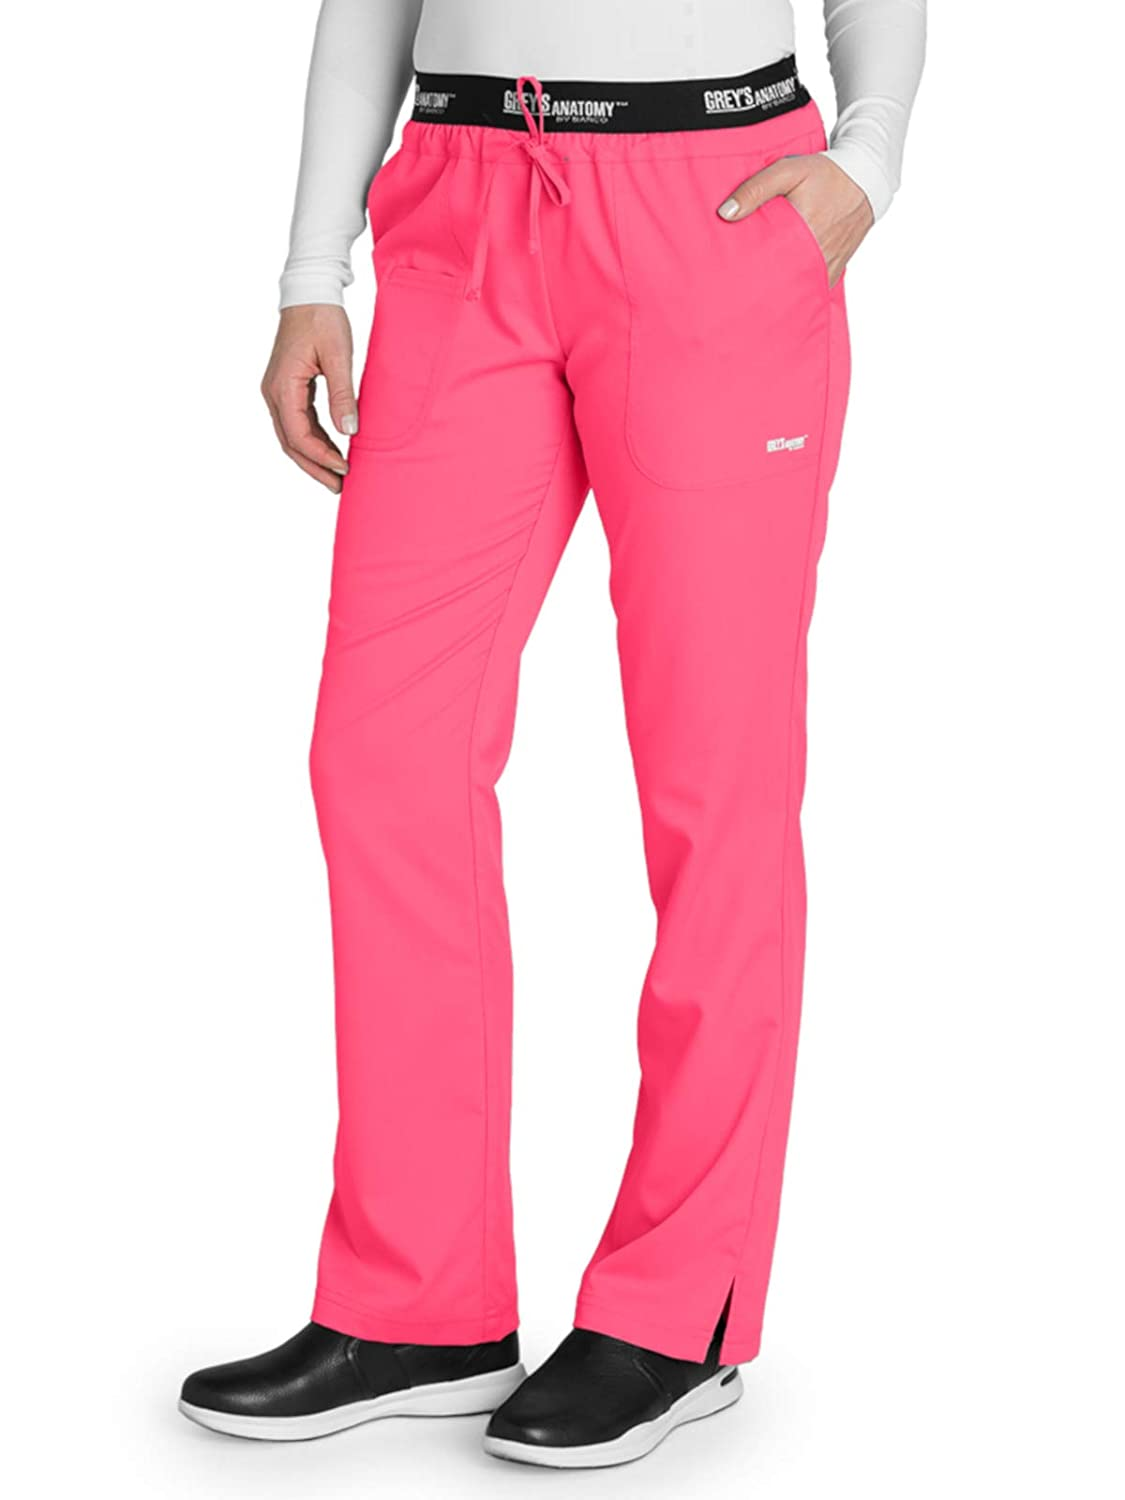 Grey's Anatomy Active 4275 Women's Logo Waist Drawstring Pant